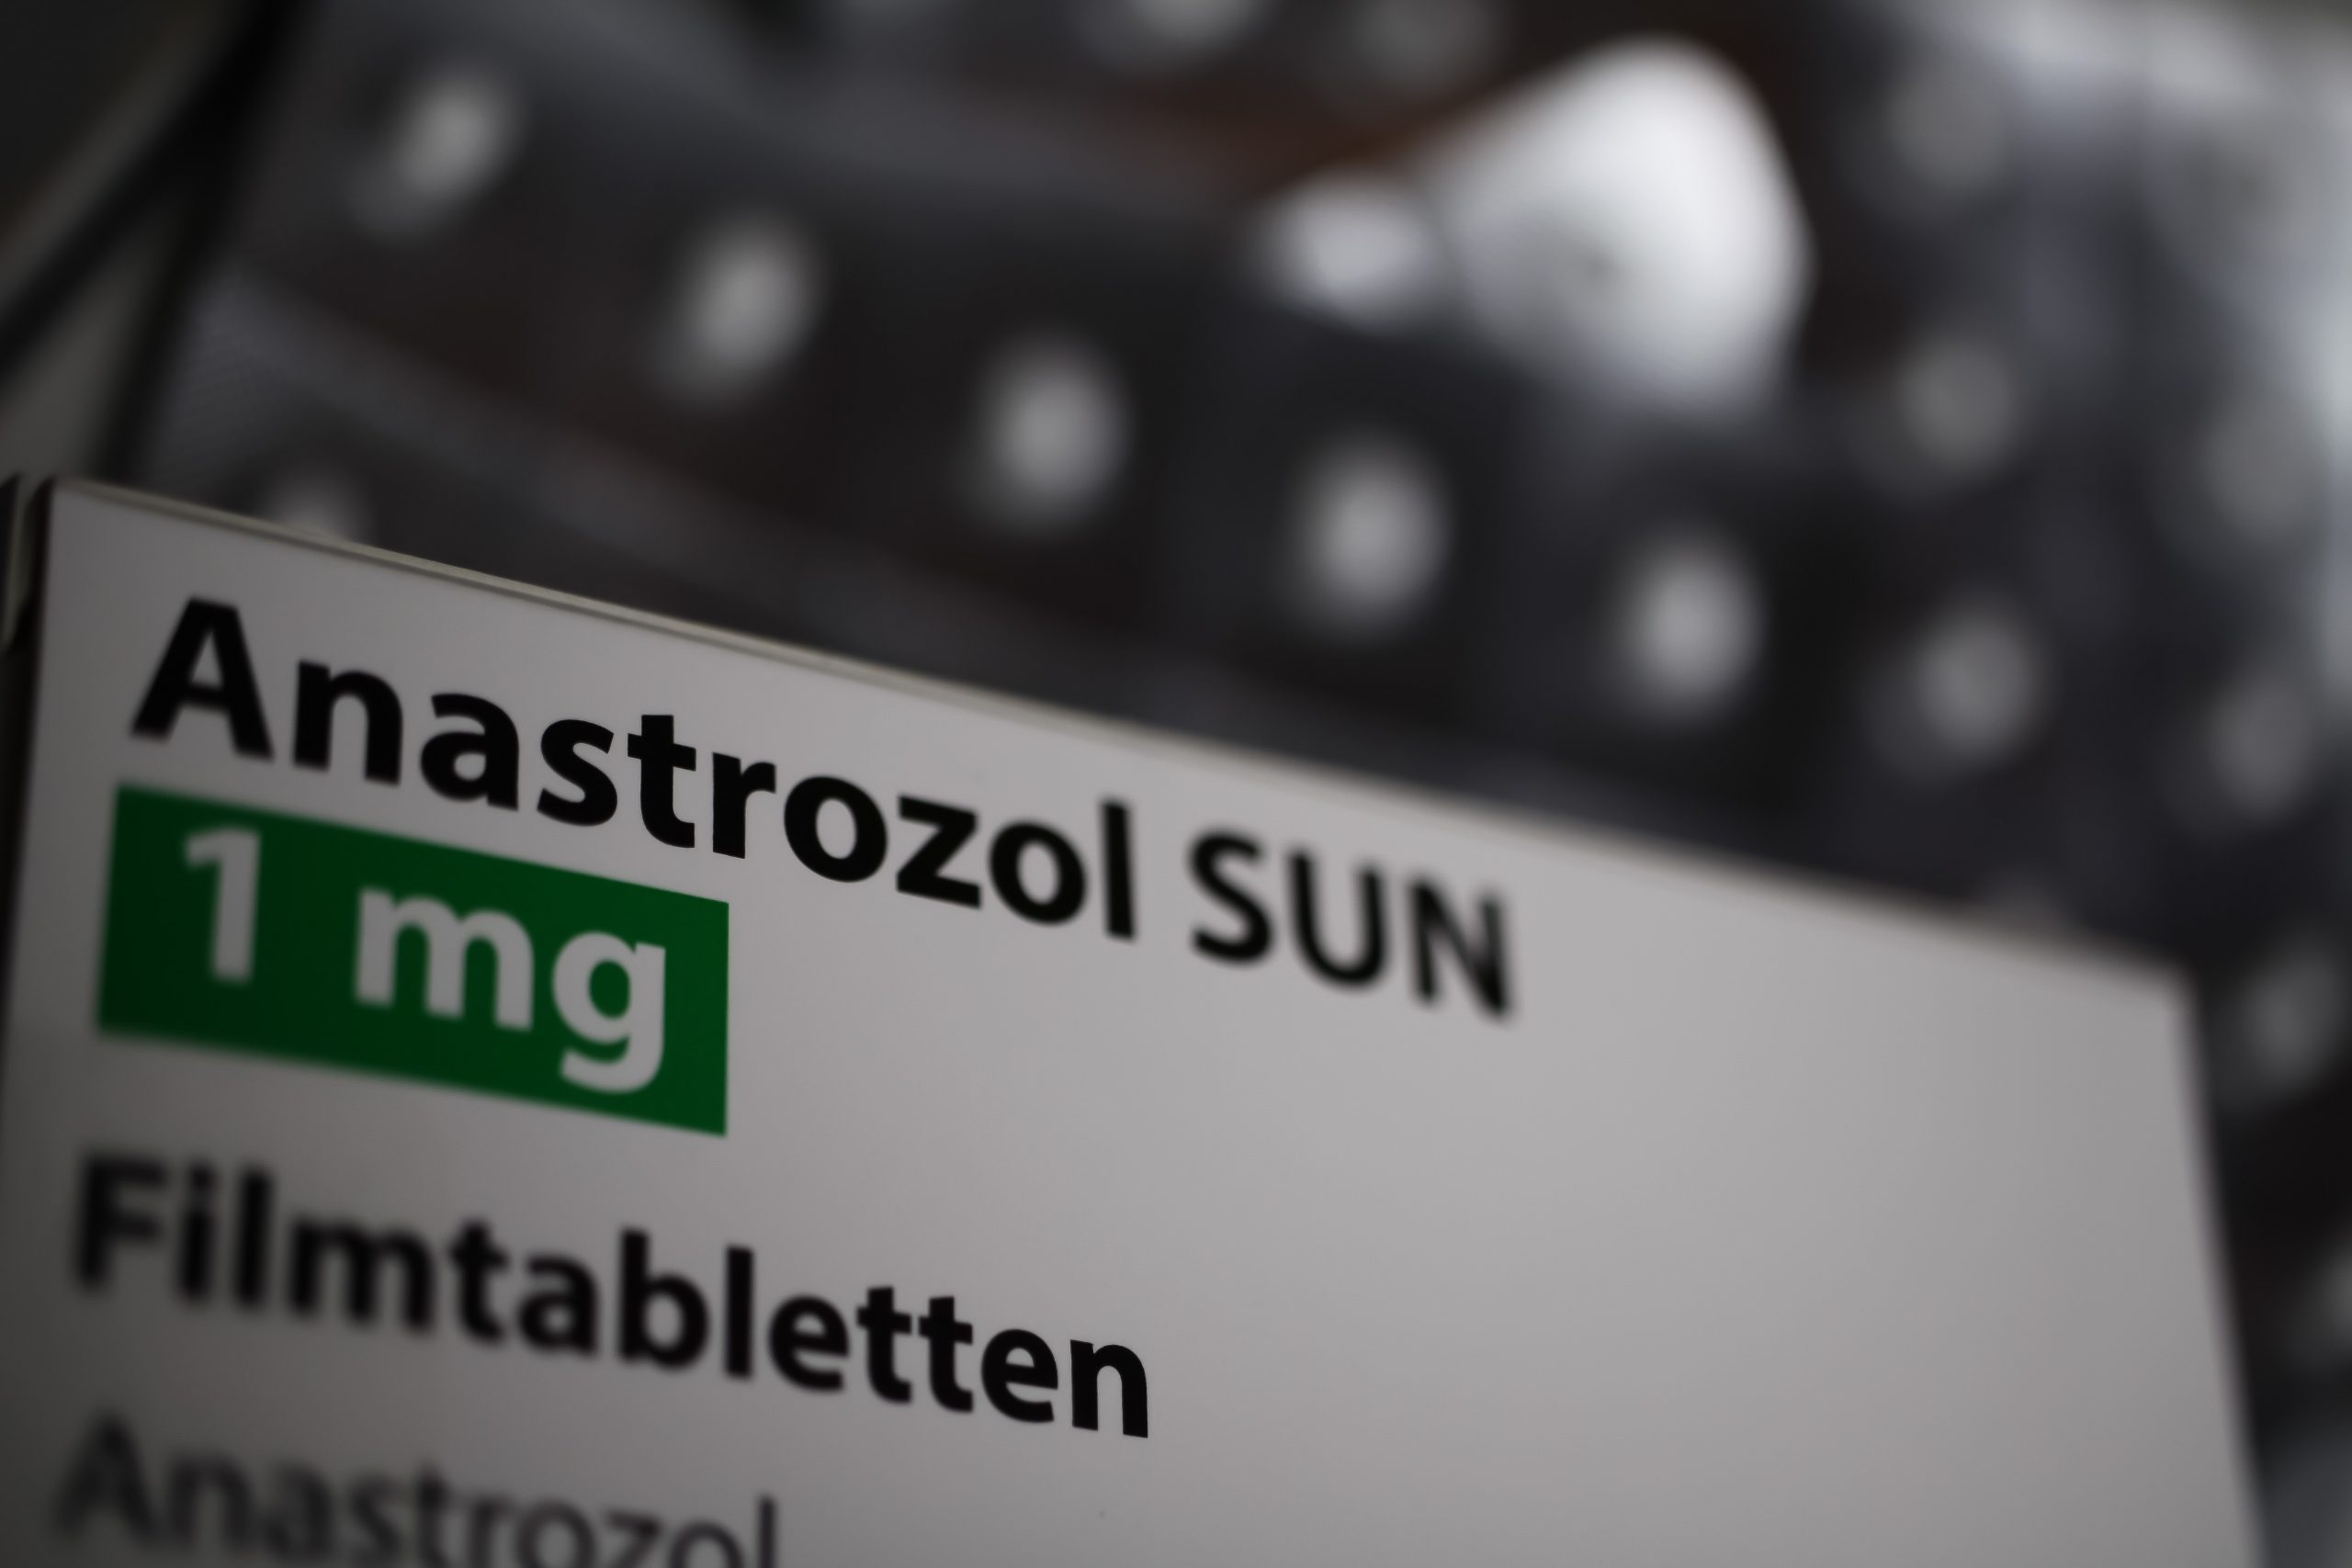 Why Would a Man Take Anastrozole?